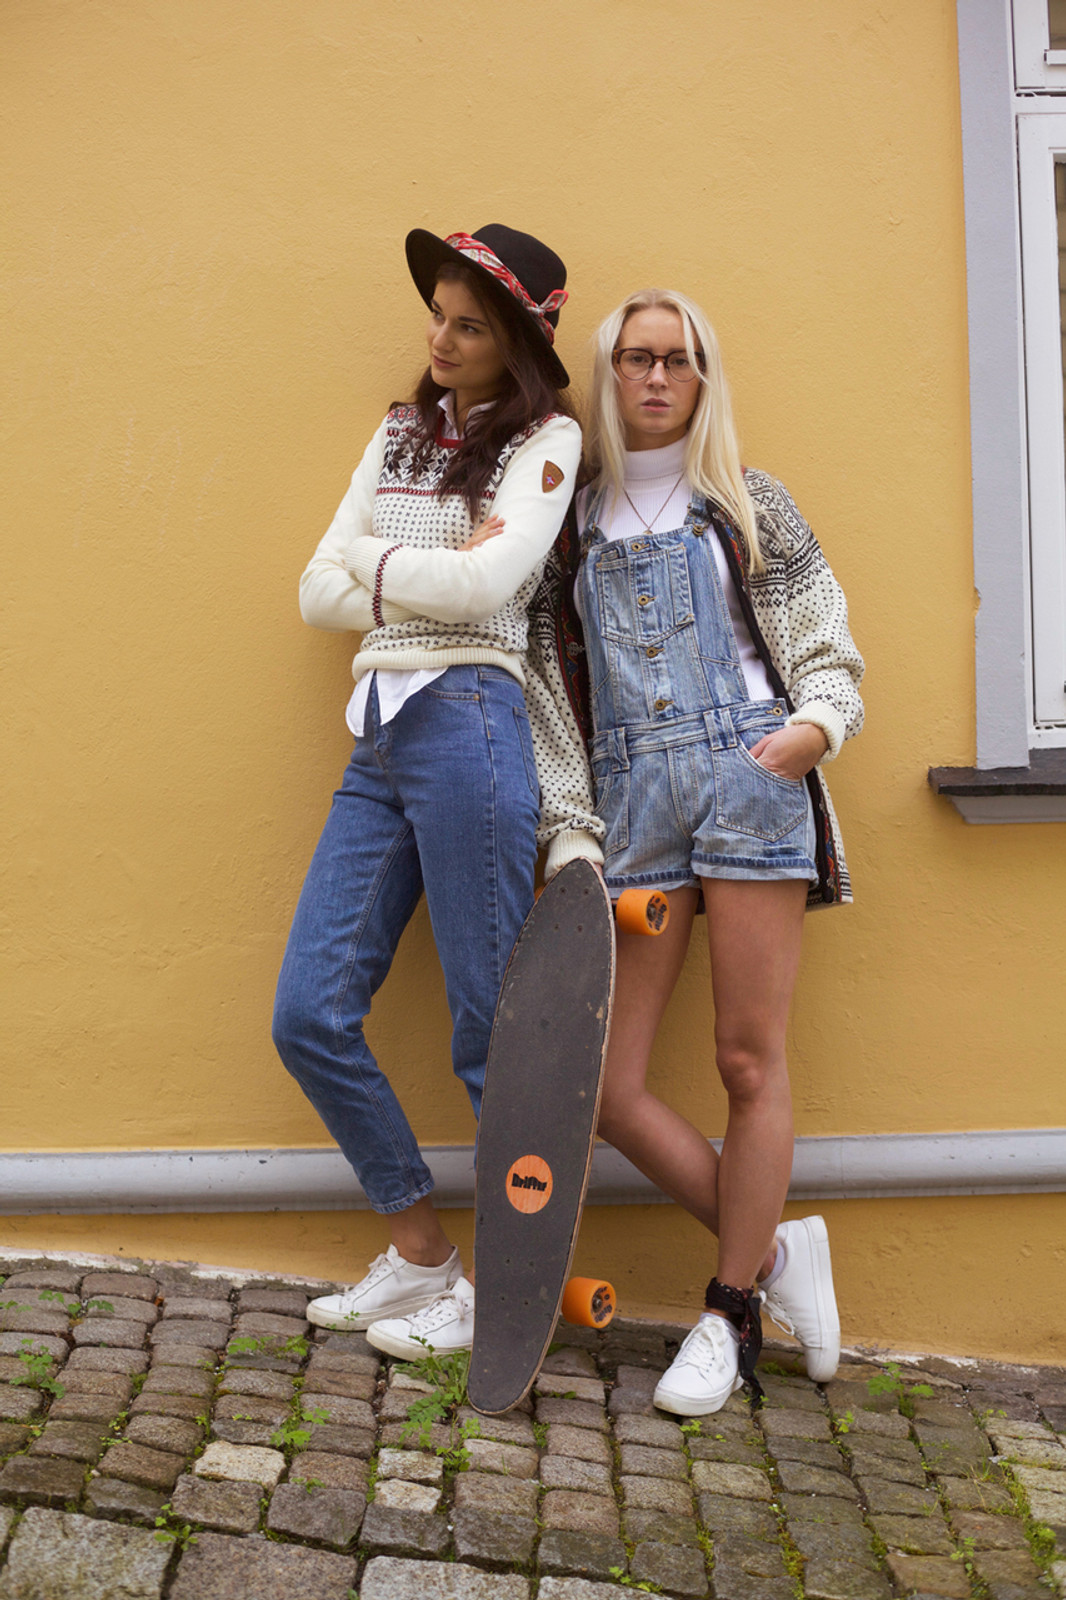 Women standing against wall wearing Dale of Norway Garmisch ladies sweater in Off White/Navy/Raspberry, 92601-A, and new unisex Setesdal cardigan in Off White/Black, 83291-A.